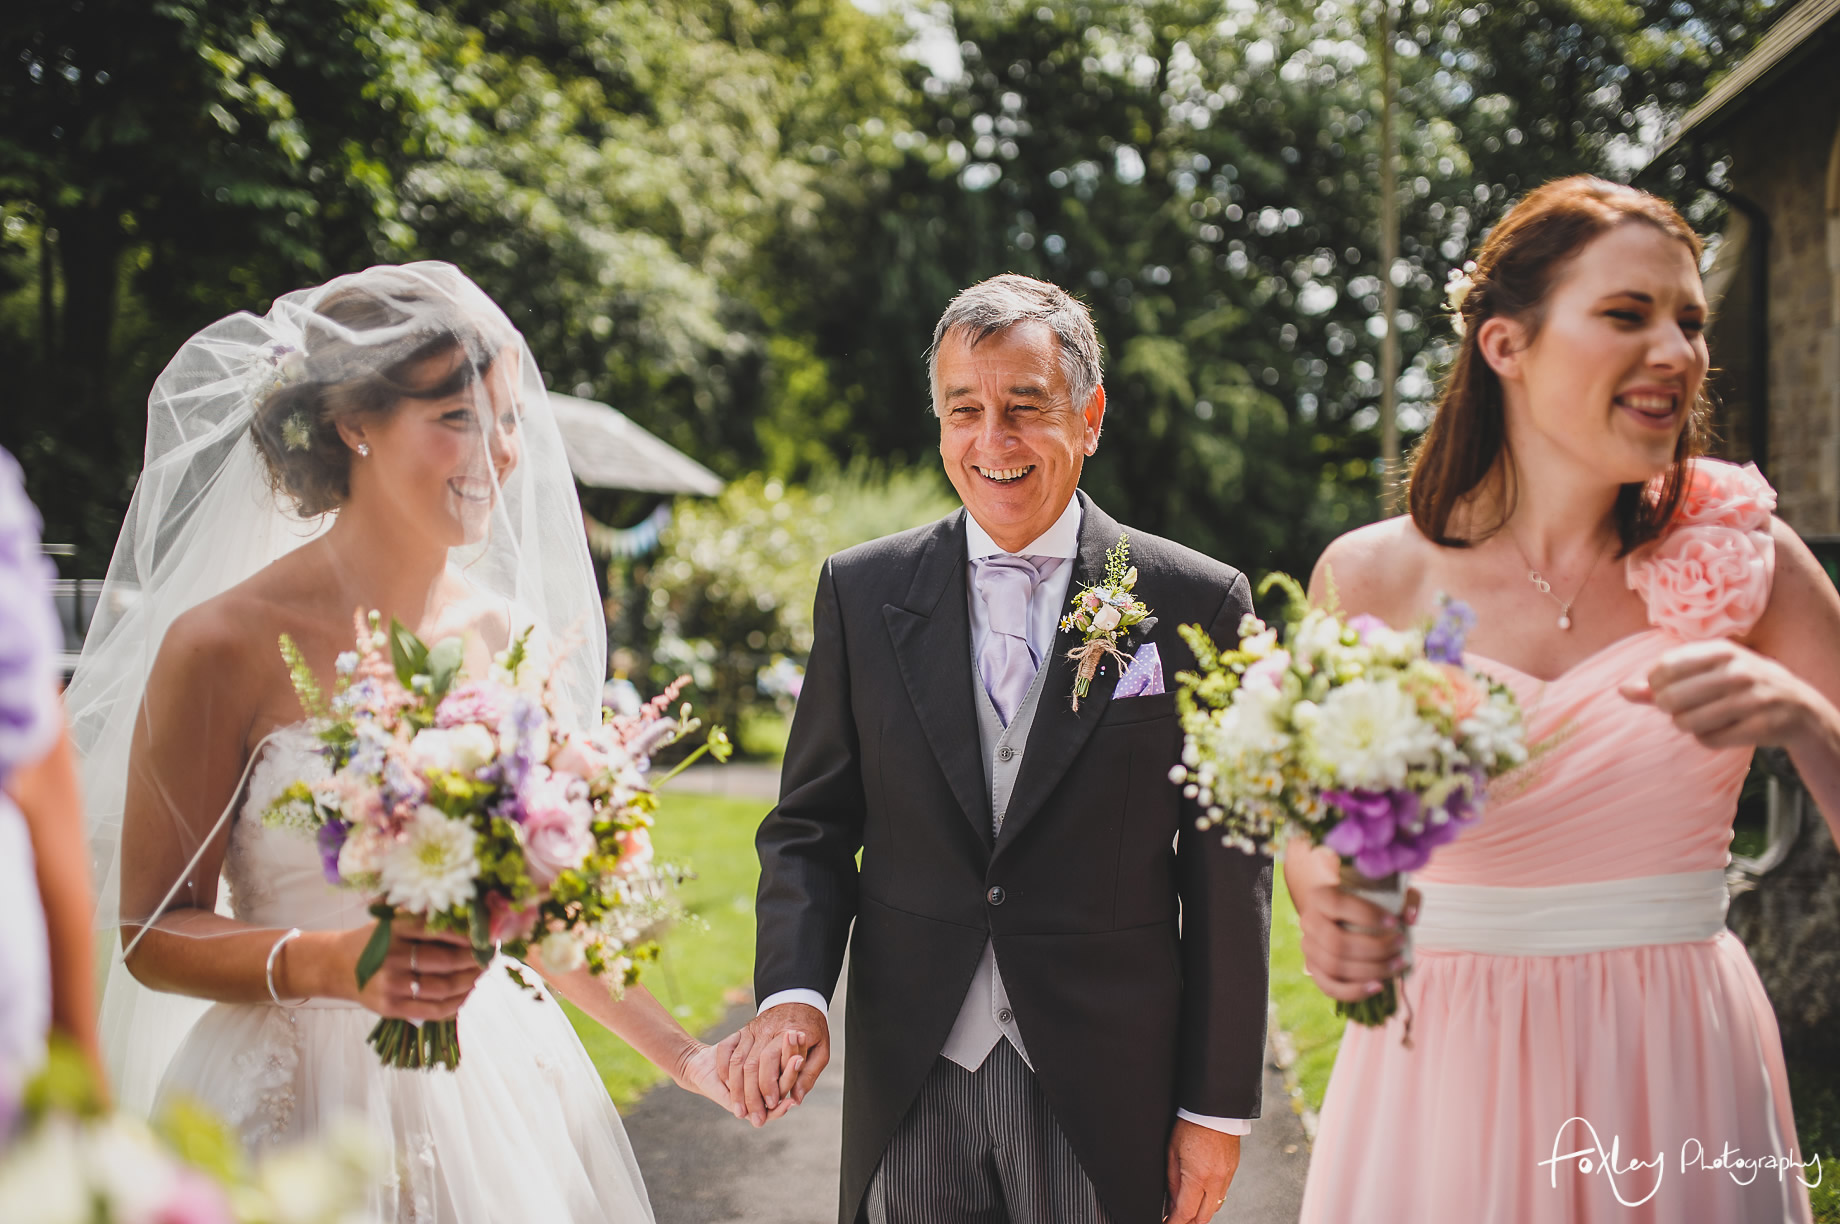 Claire and James' Wedding at Mitton Hall 079